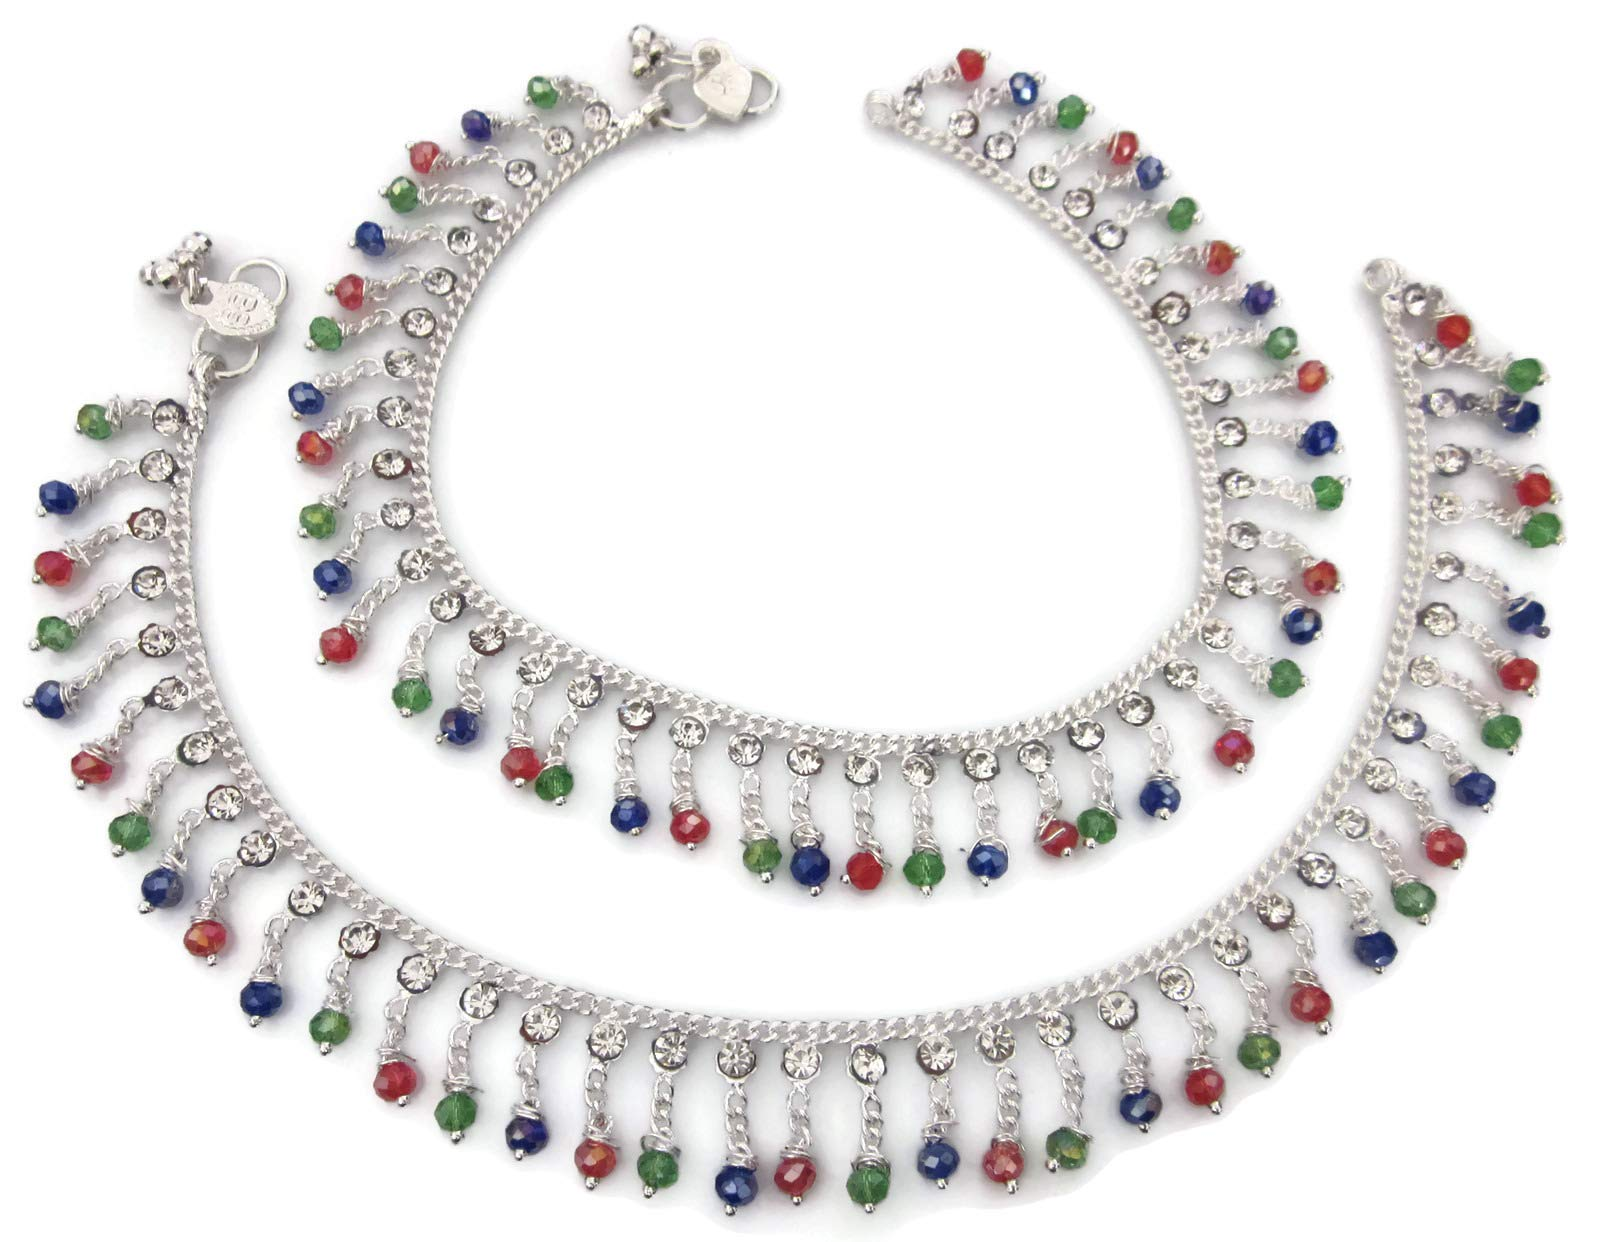 Anklet Pair | Diamante Multi Color Glass Crystals Tassel Charms | Metal Chain Plated Silver | Indian Payal Gypsy Hippie Boho Style Novelty Fashion Jewelry for Women